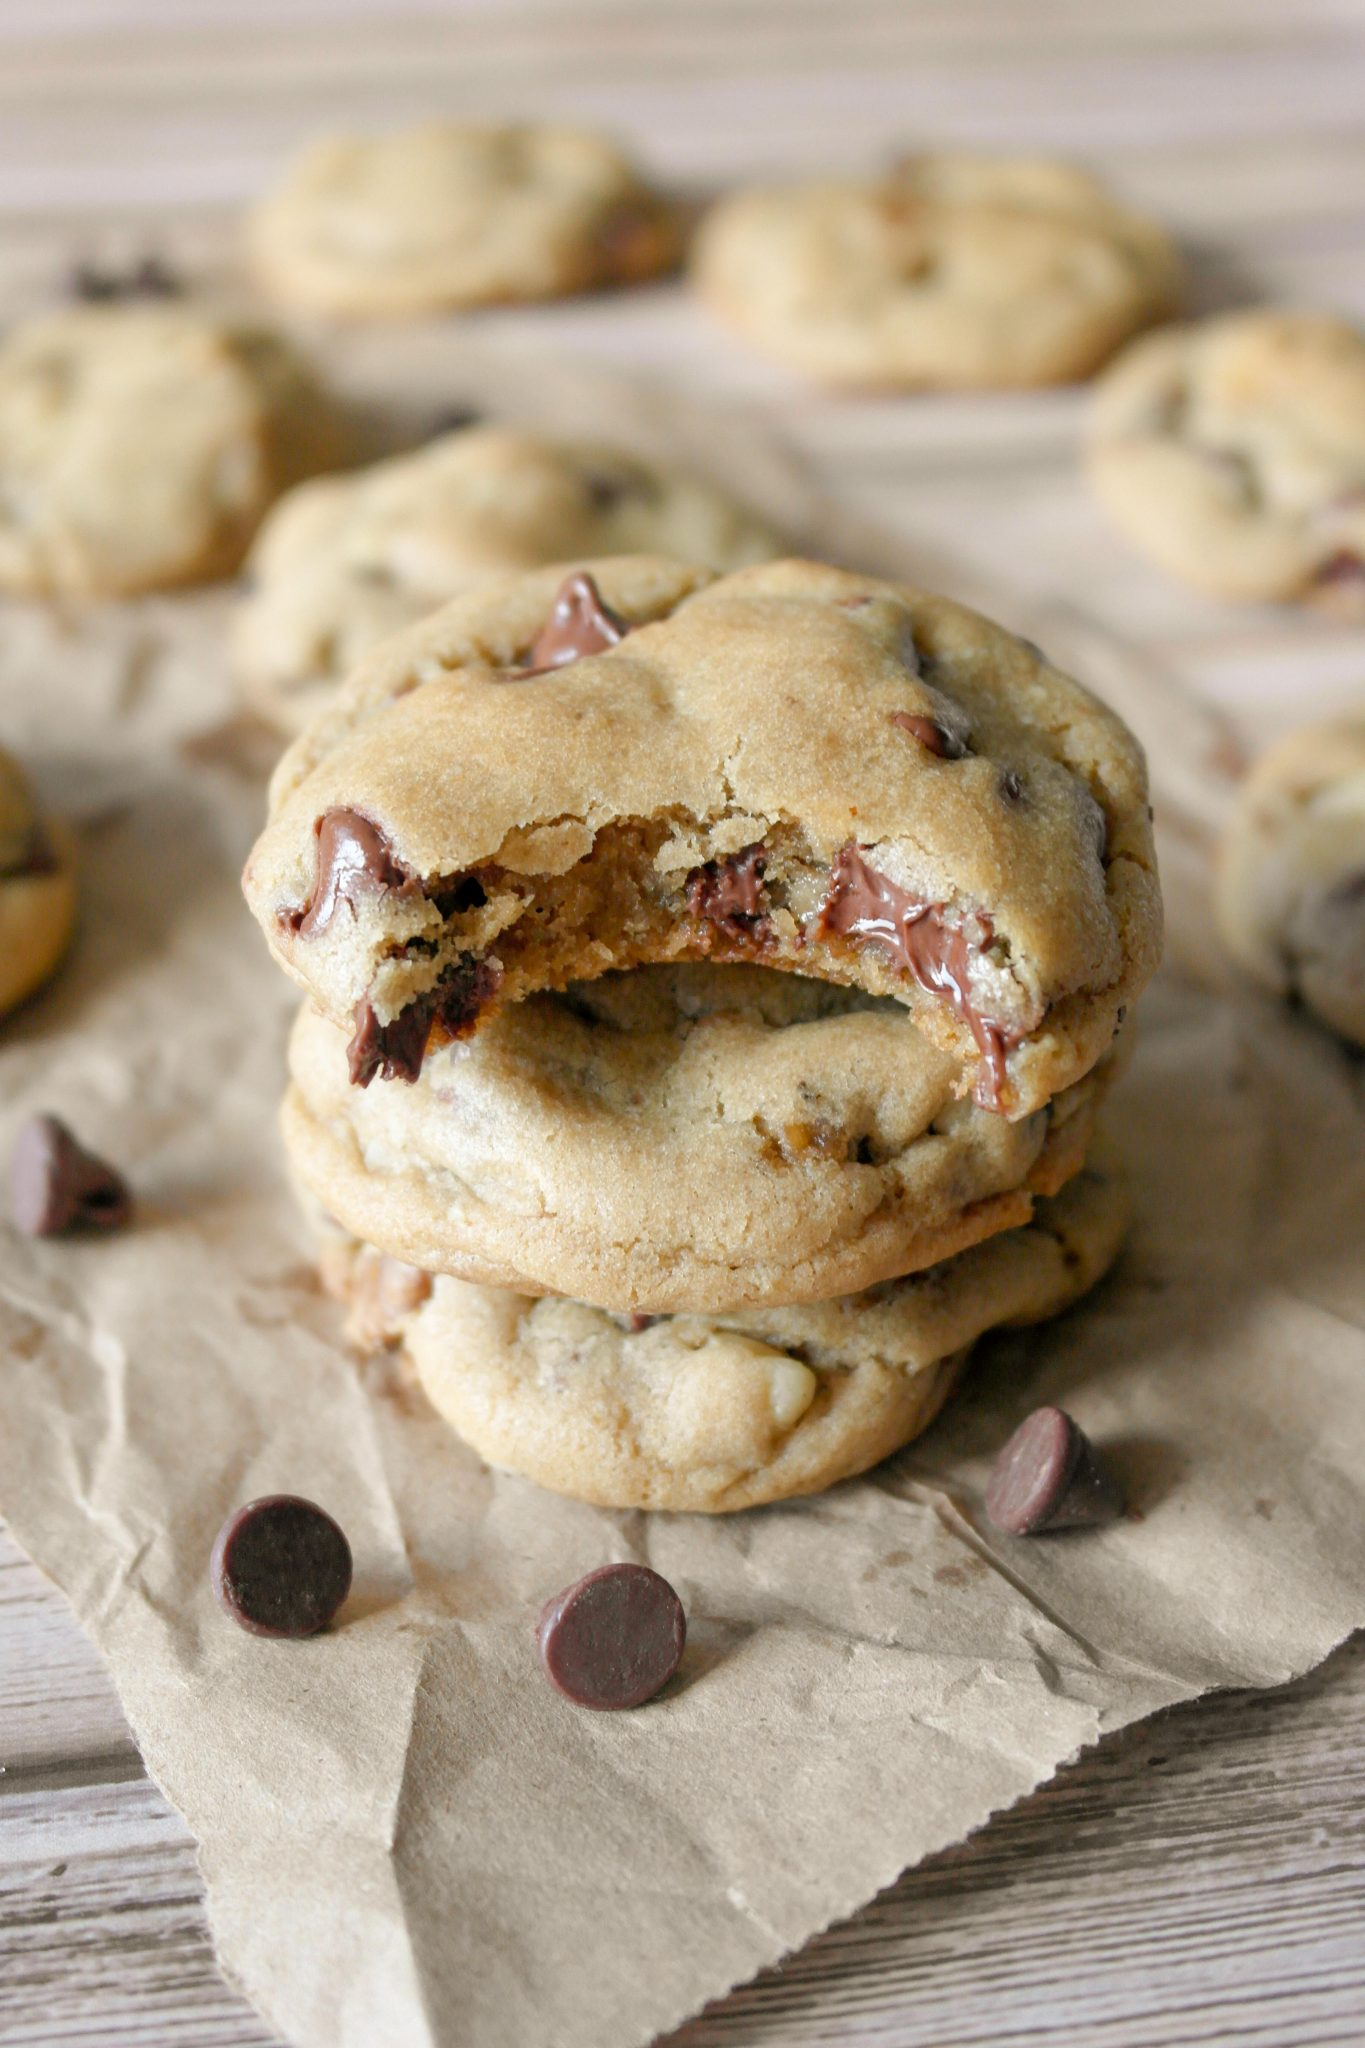 15 Of The Best Chocolate Chip Cookie Recipes The